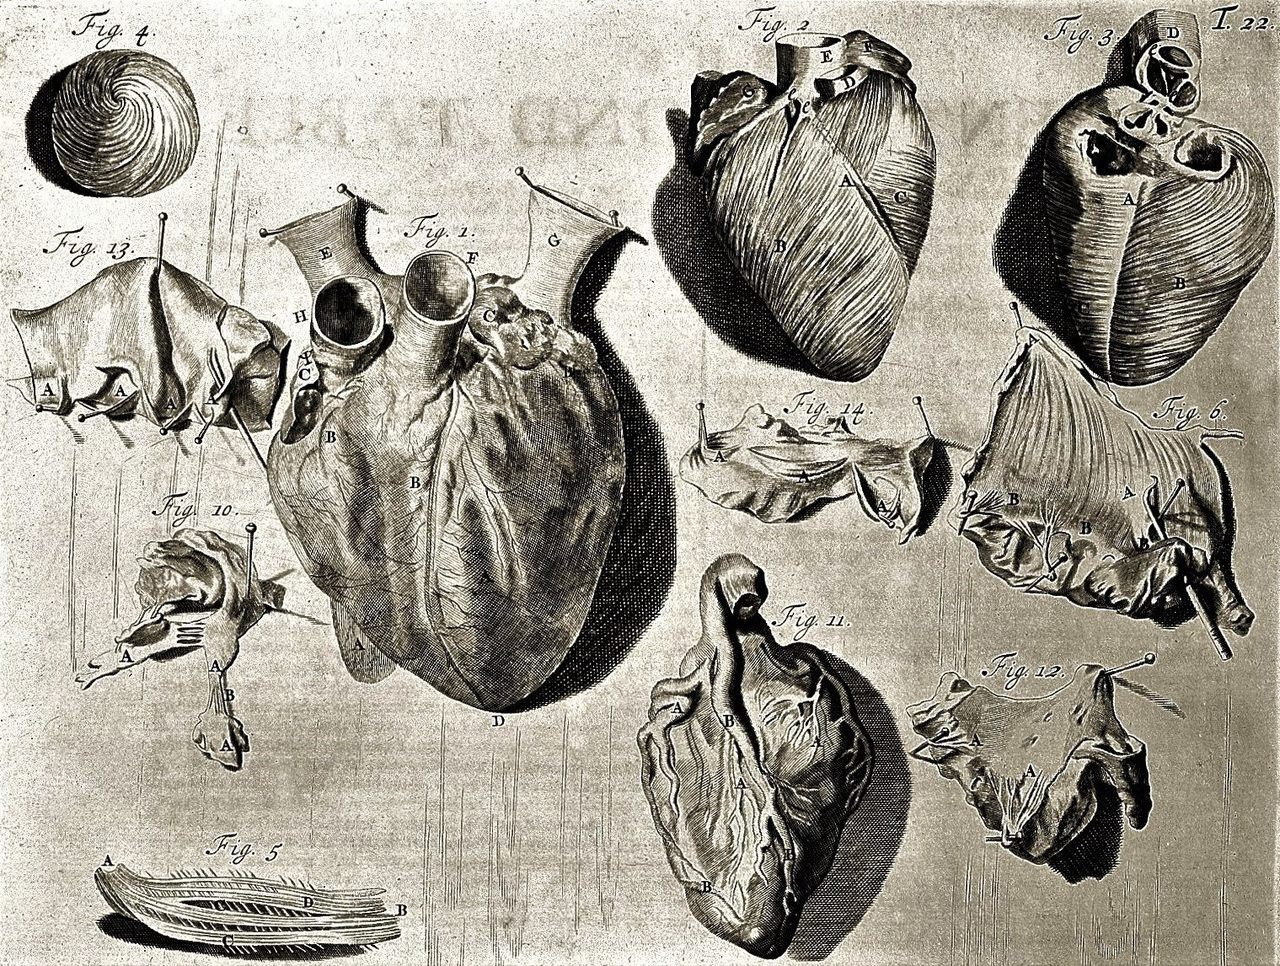 L0000339 Heart illustration, 18th century